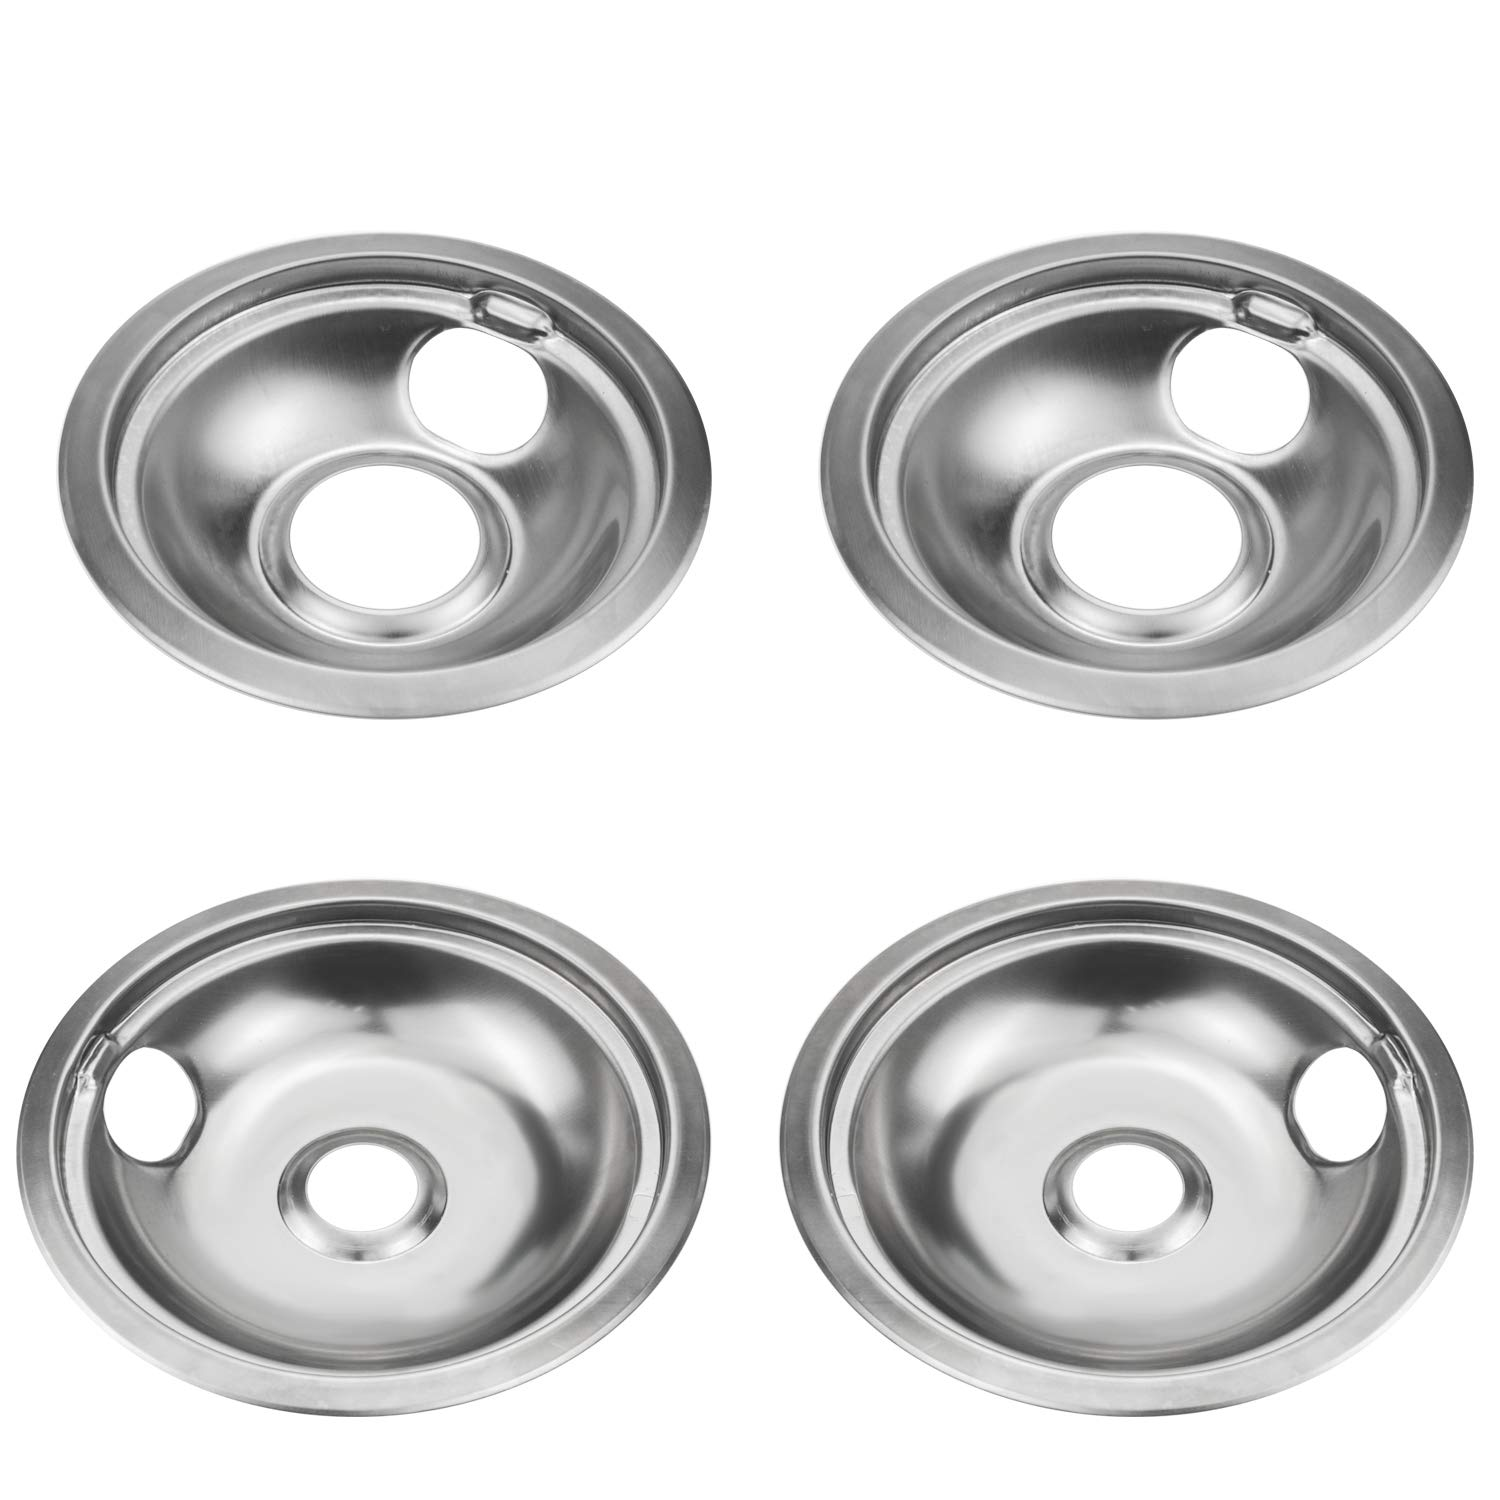 Bestong 4-pack Gas Stove Burner Covers Stove Drip Pans Replacement for Whirlpool W10278125 Stainless Steel Reflector Bowls